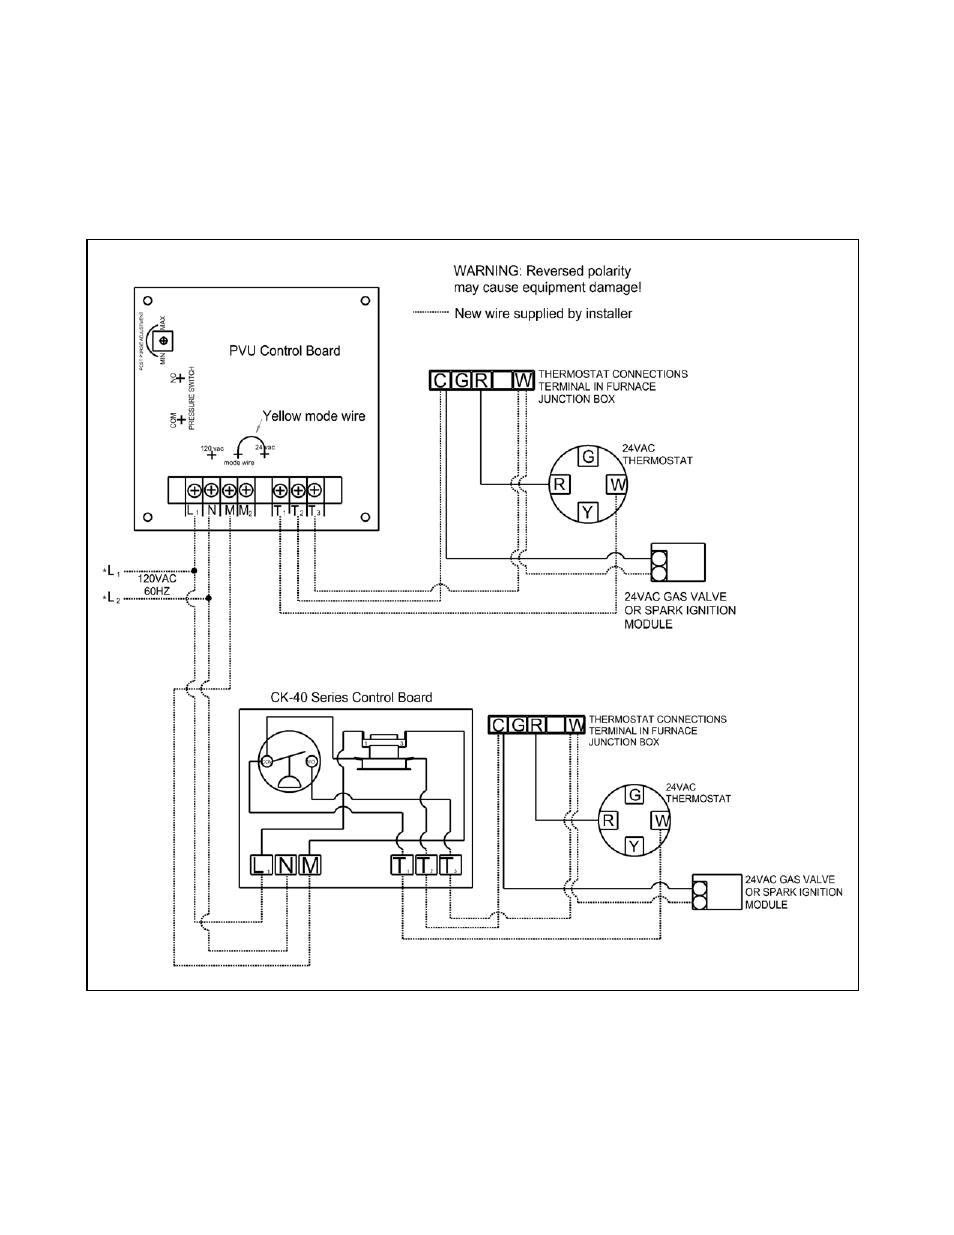 field controls power venter system pvu-300 user manual | page 12 / 16  manuals directory